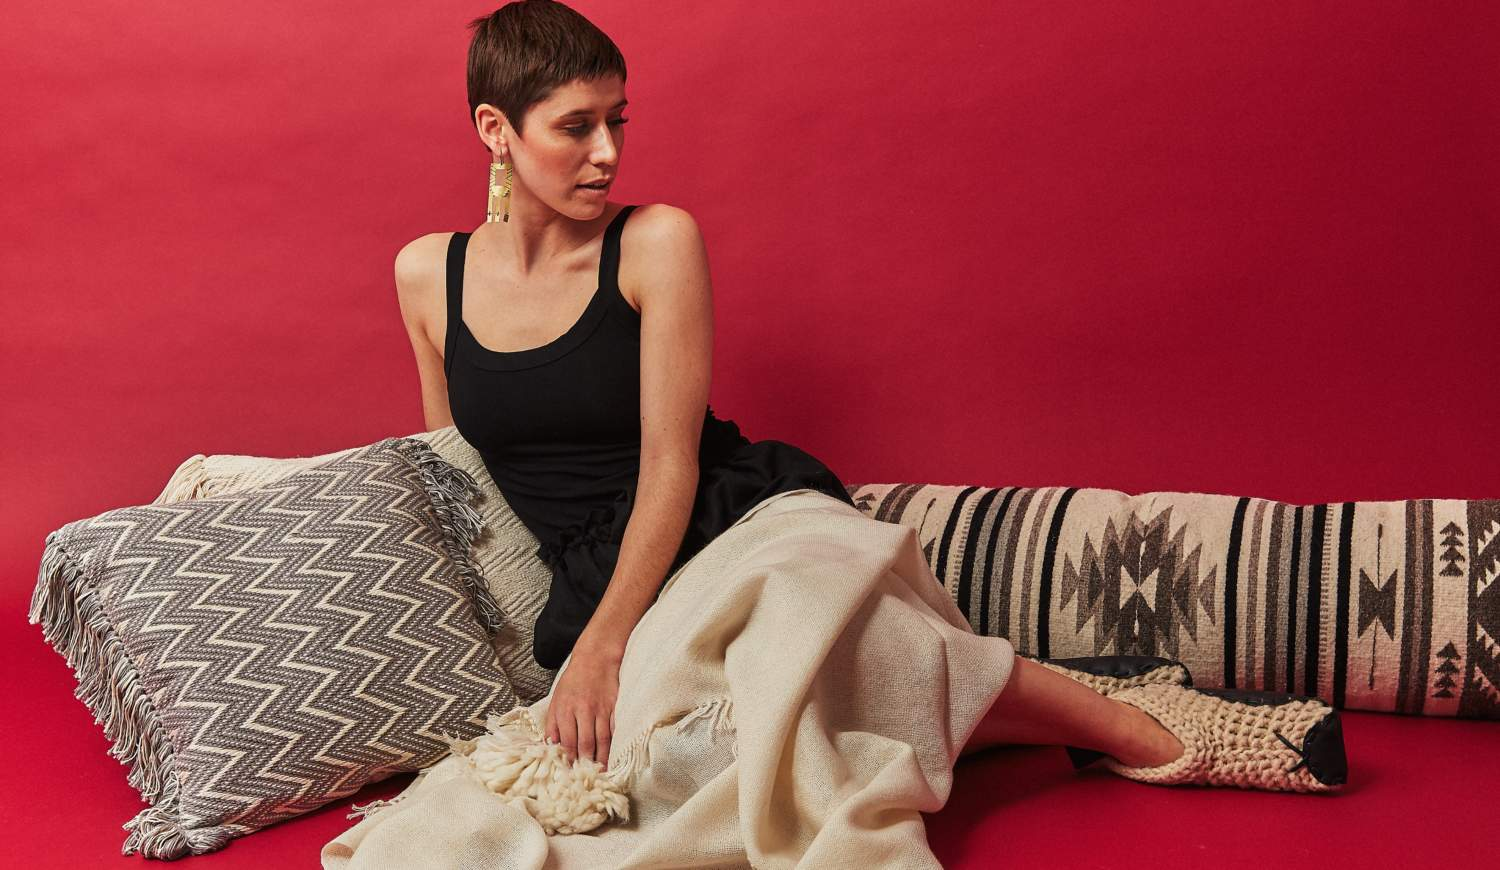 A women wearing slippers leans on a pillow and a blanket drapes over her legs